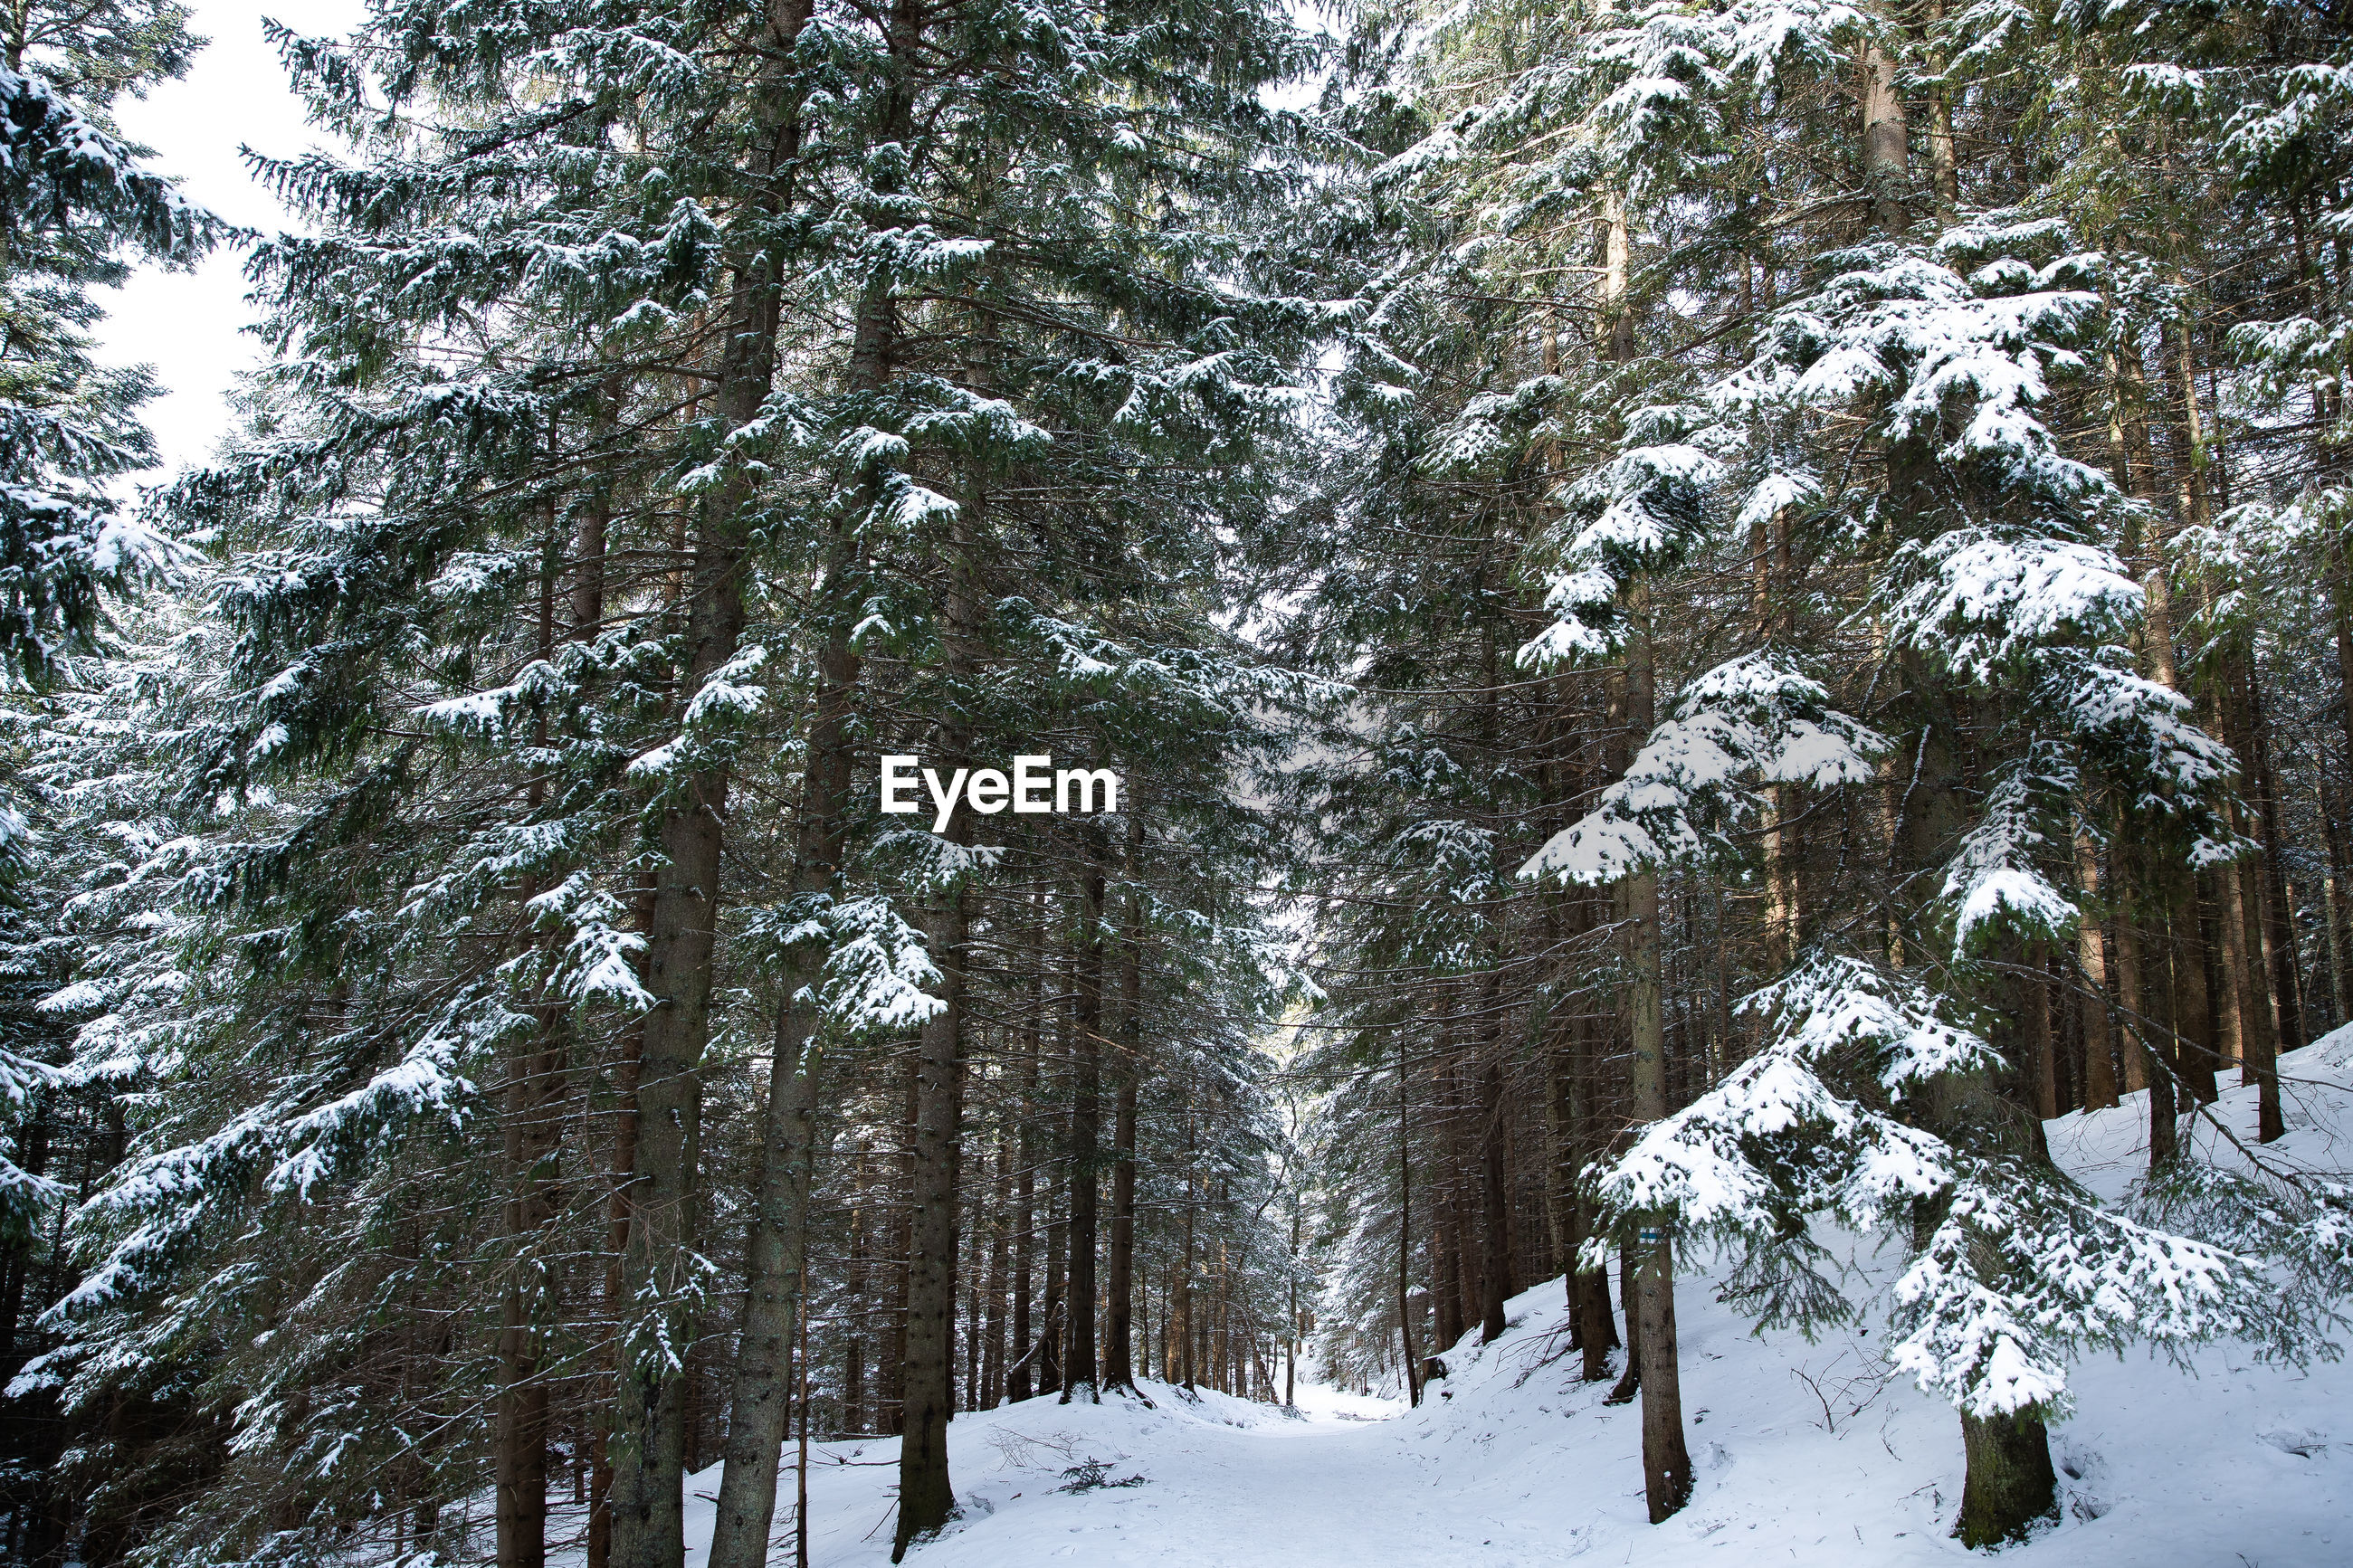 PINE TREES ON SNOW COVERED LANDSCAPE